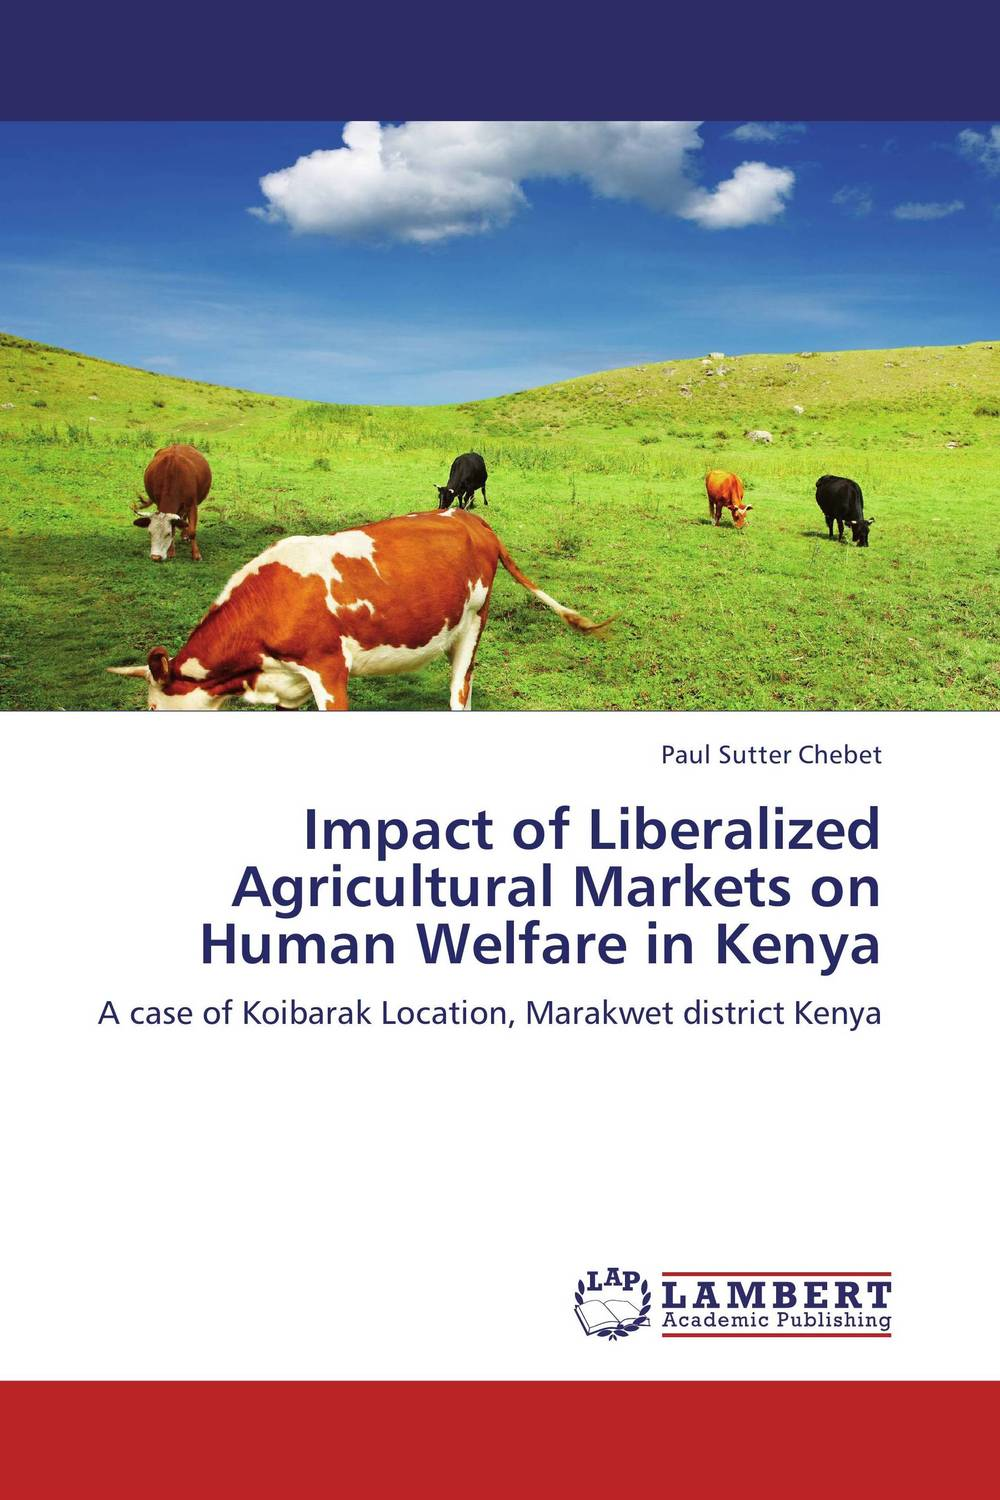 Impact of Liberalized Agricultural Markets on Human Welfare in Kenya телевизор full hd sony kdl 49wd757